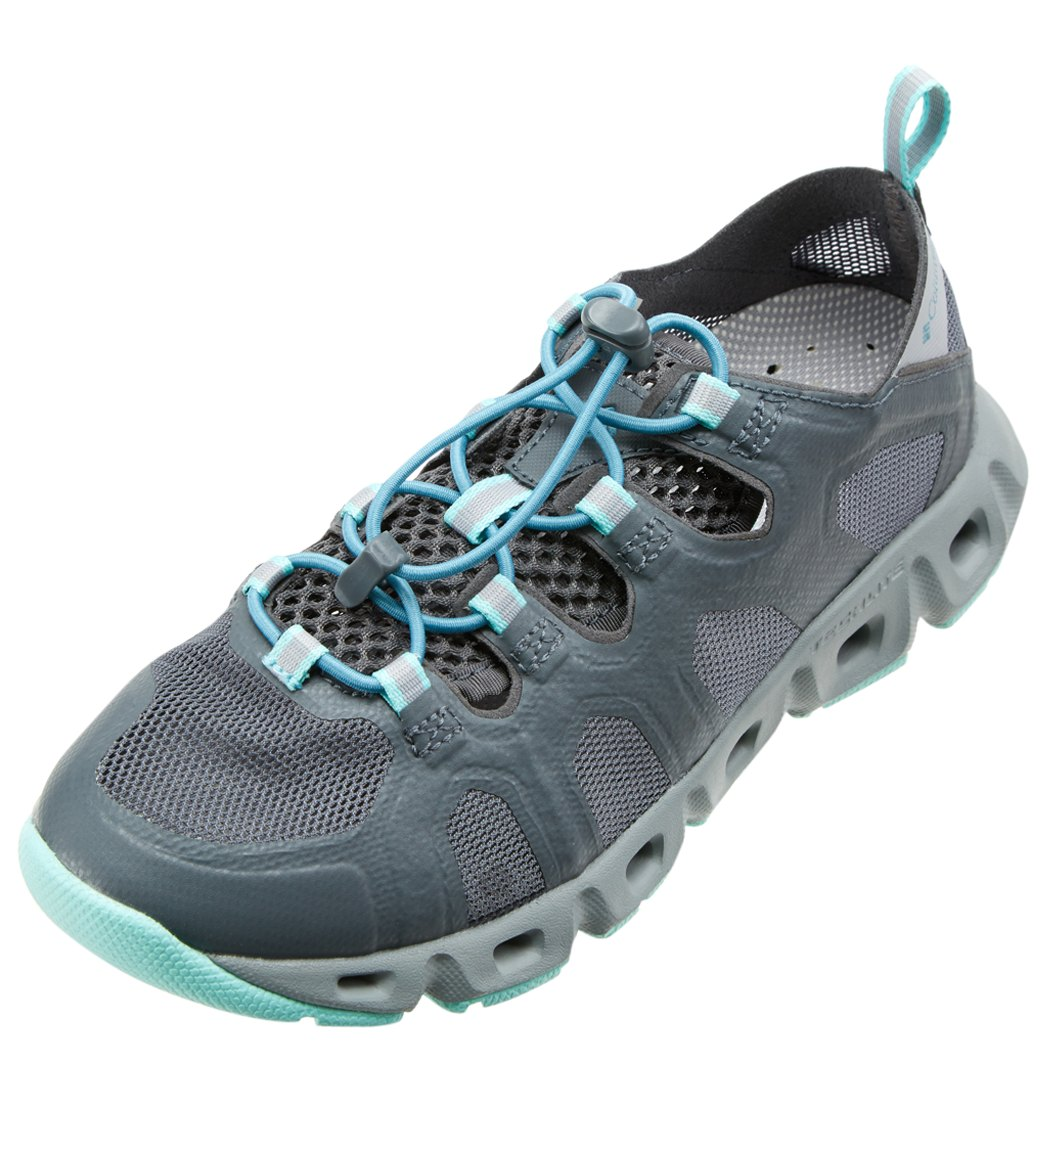 b6cf63358abb Columbia Women s Supervent Hybrid Shoe at SwimOutlet.com - Free Shipping